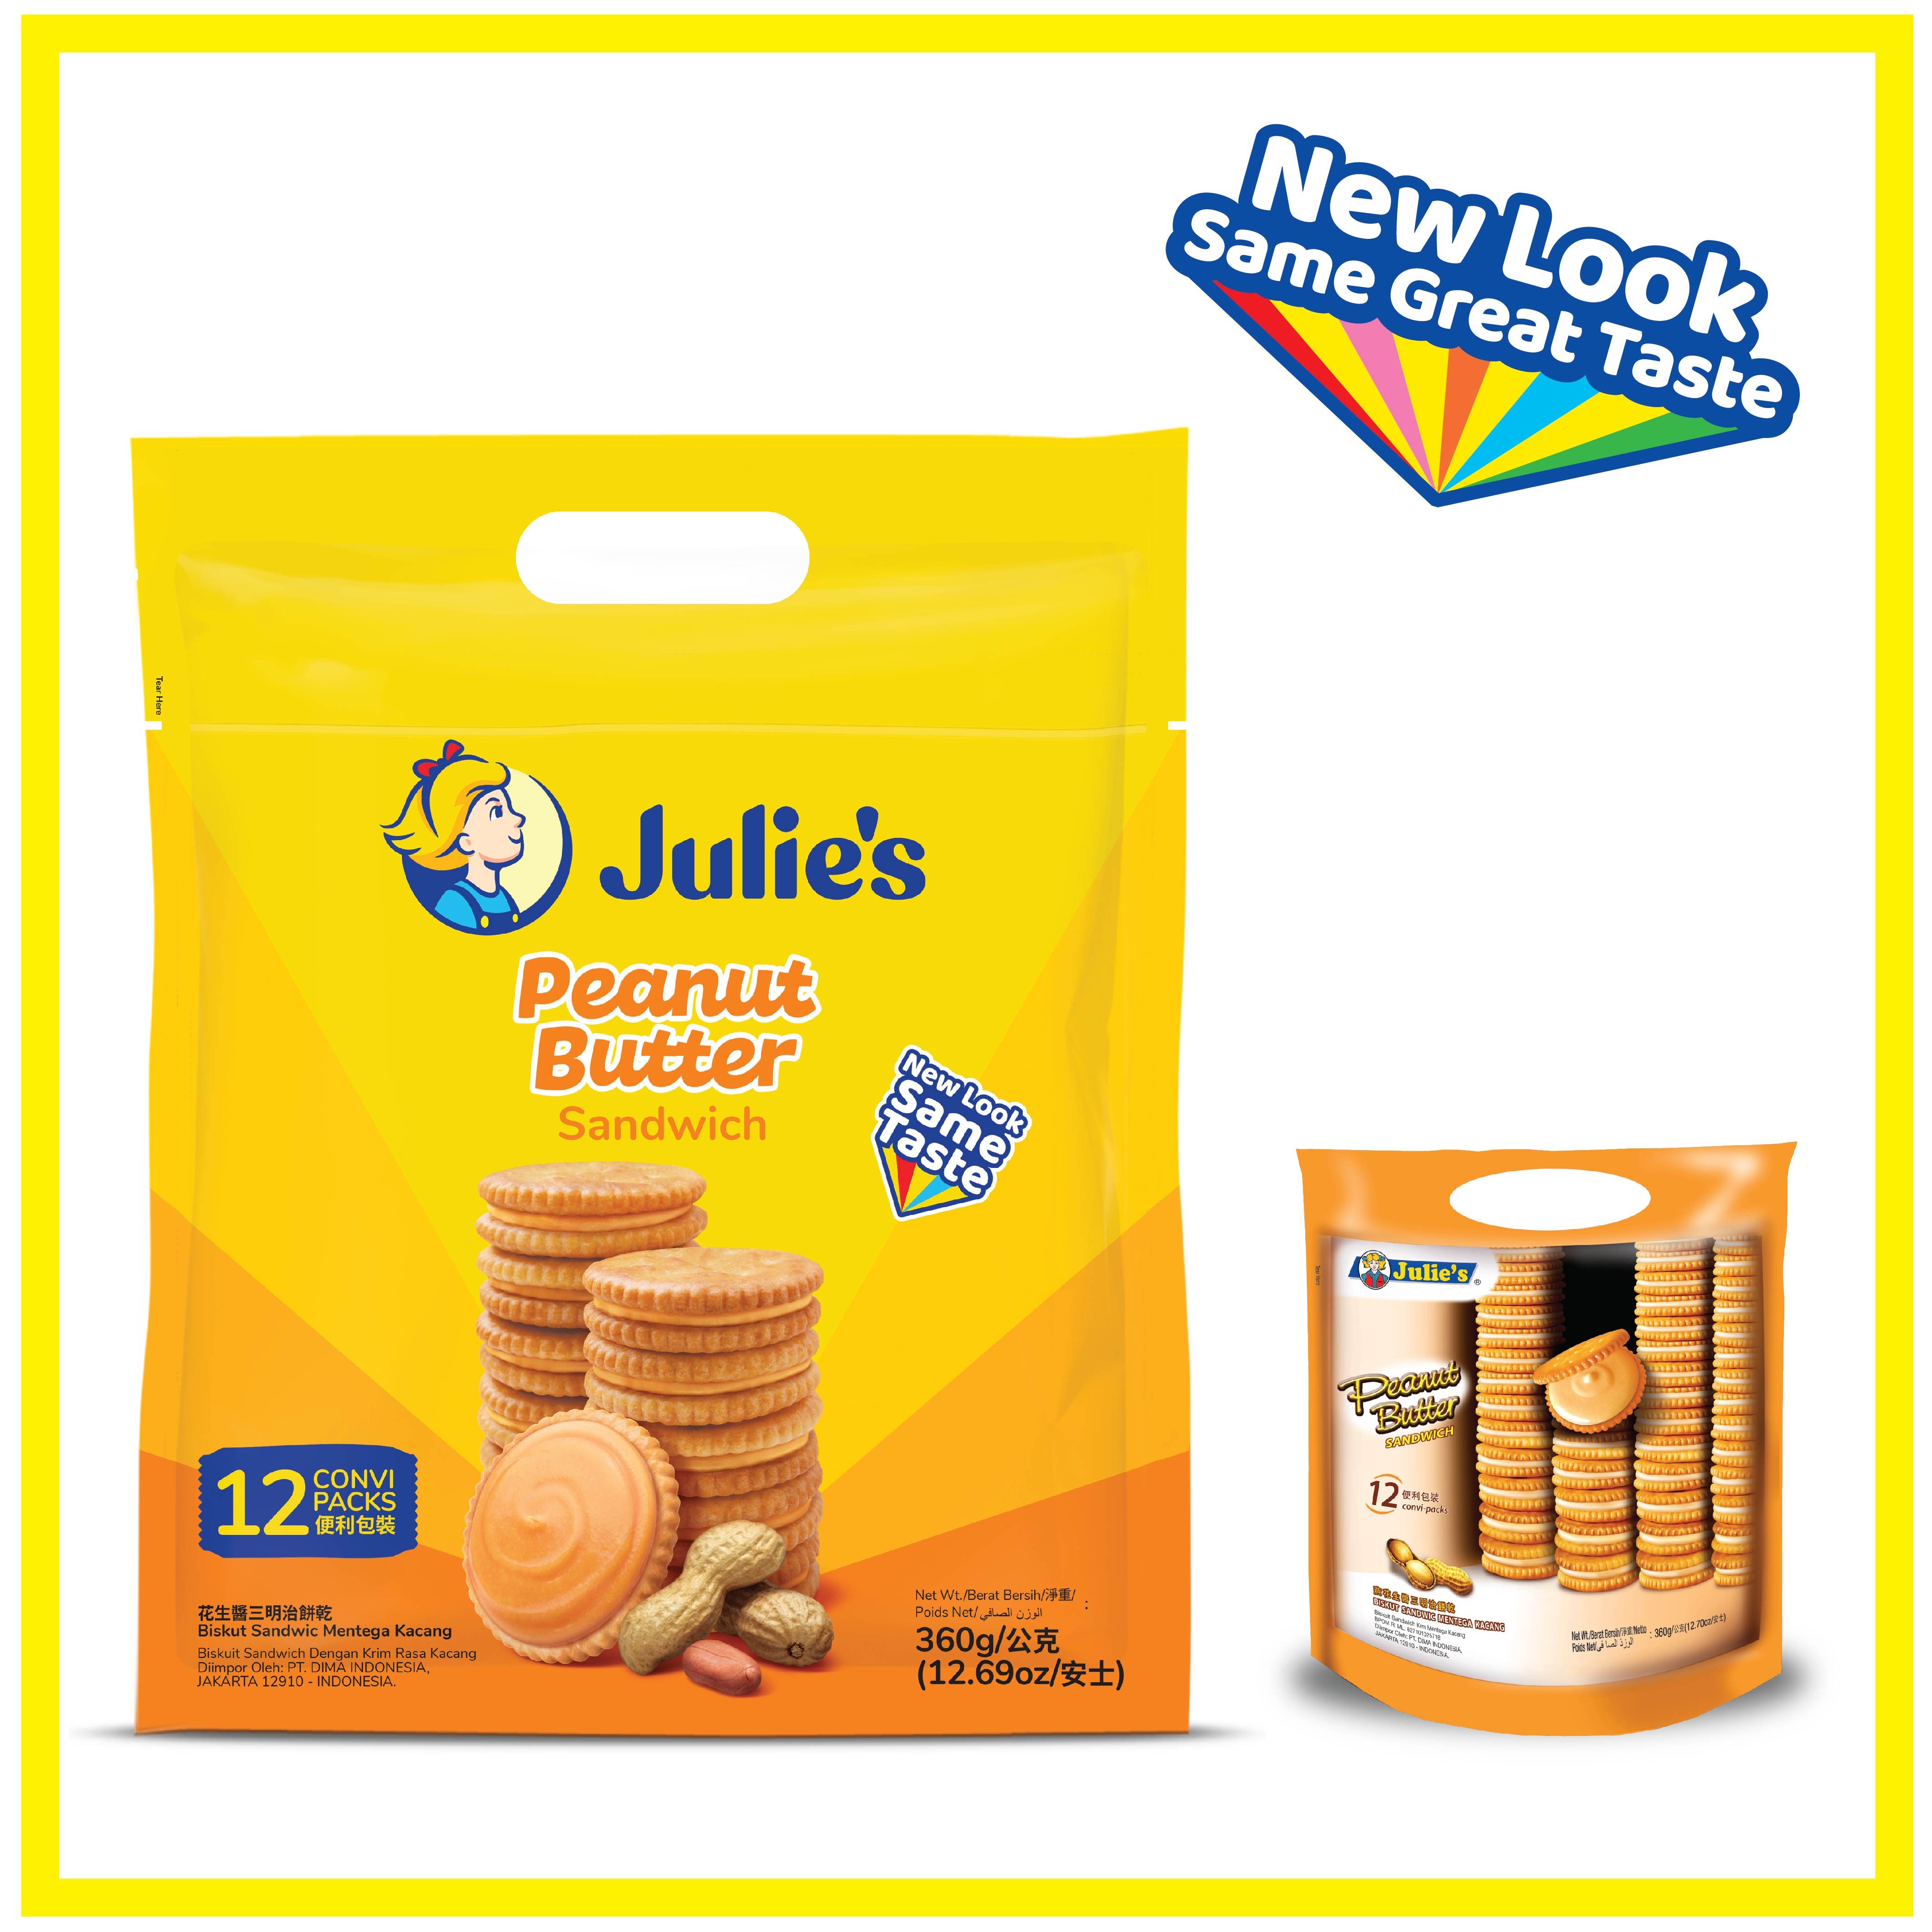 Julies Peanut Butter Sandwich 360g x 1 pack